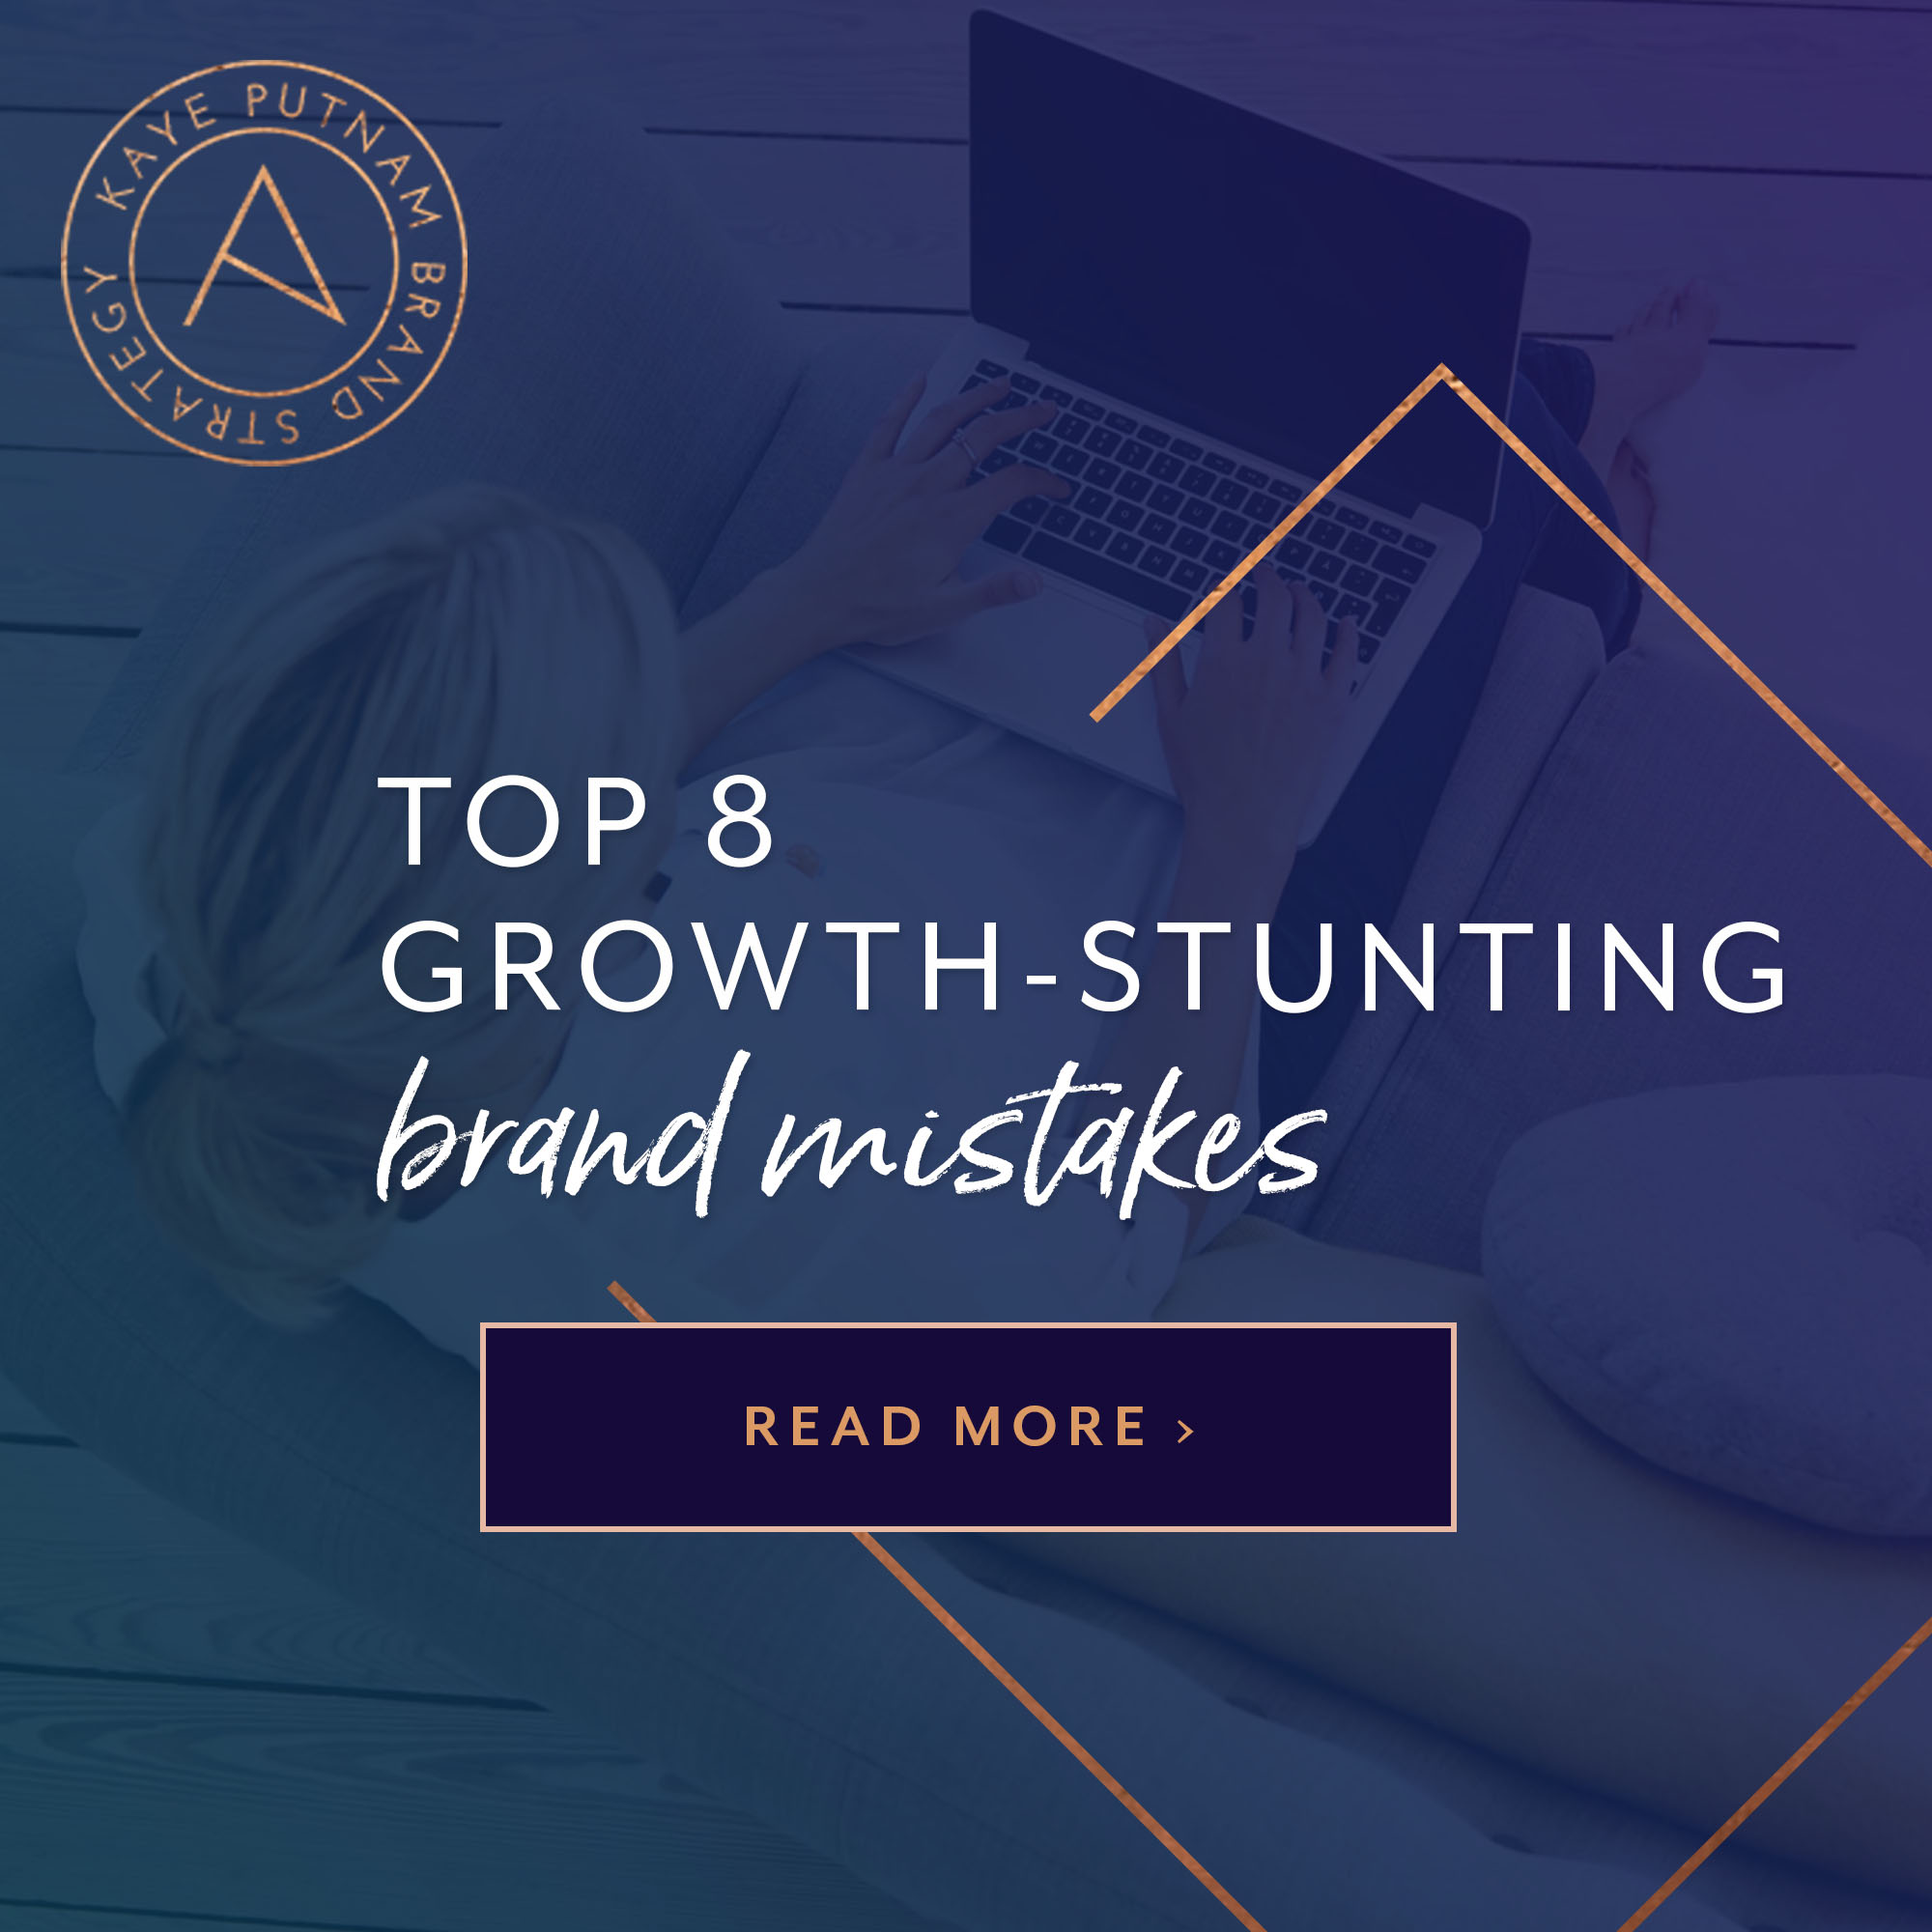 Top 8 Growth-Stunting Brand Mistakes